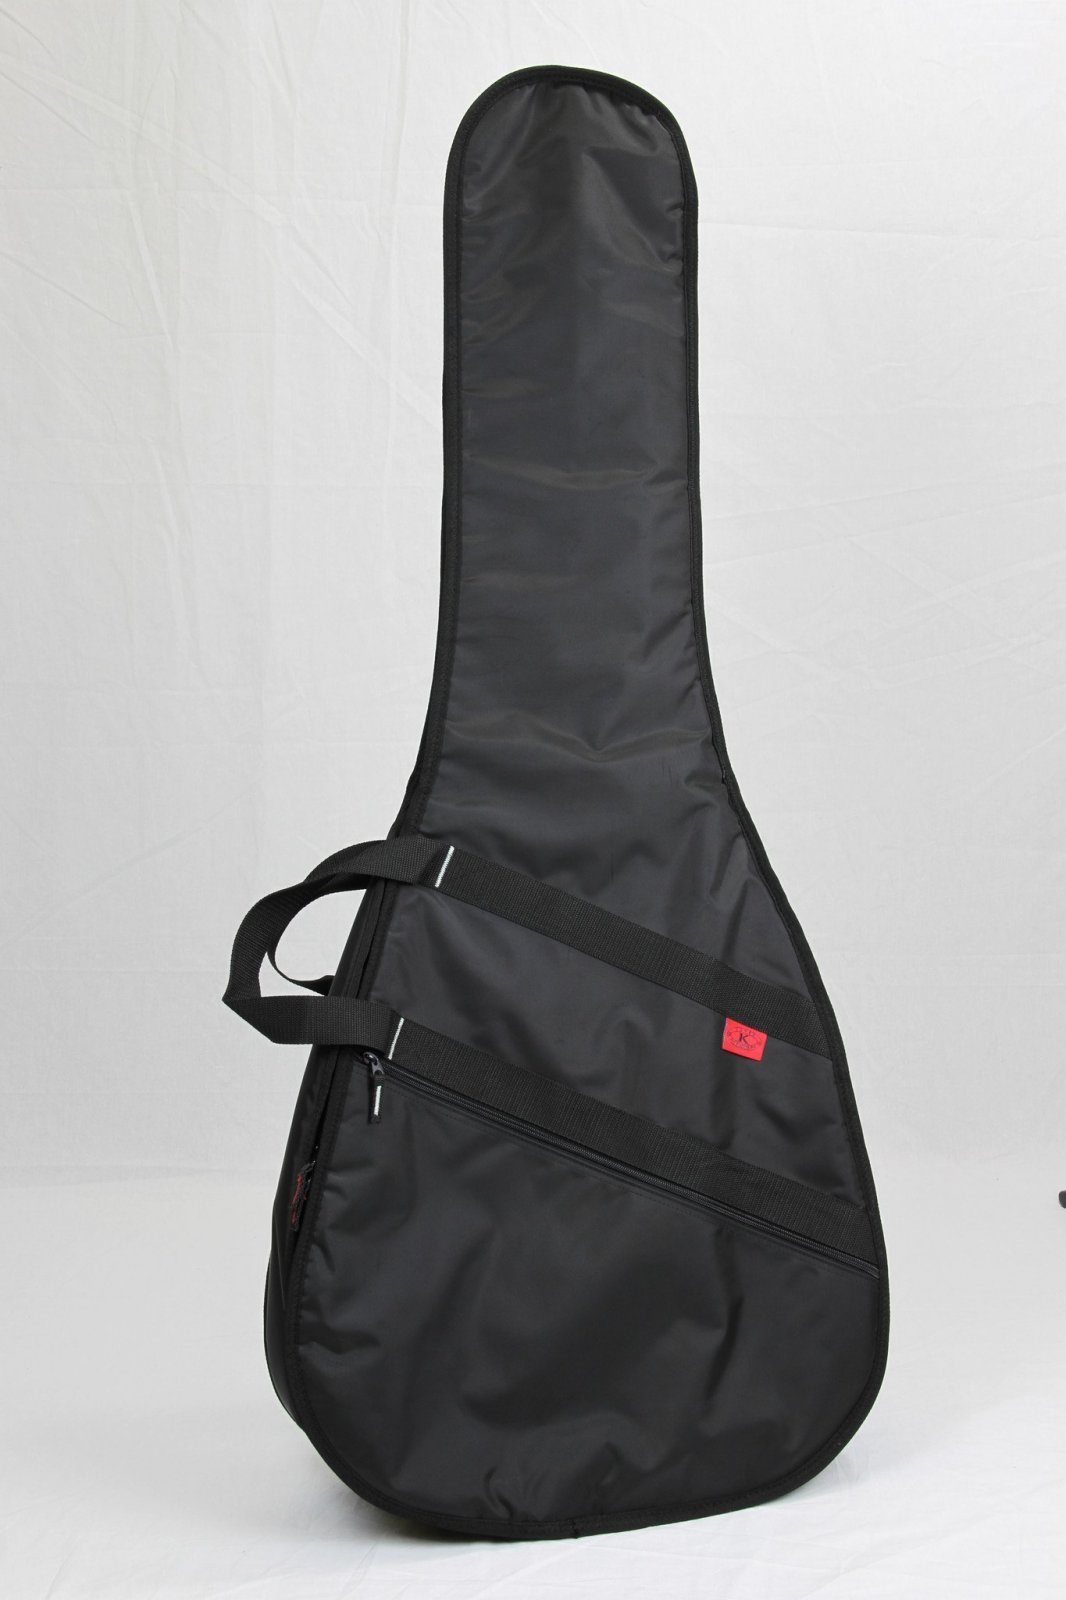 RAZOR Xpress Classical Guitar Bag